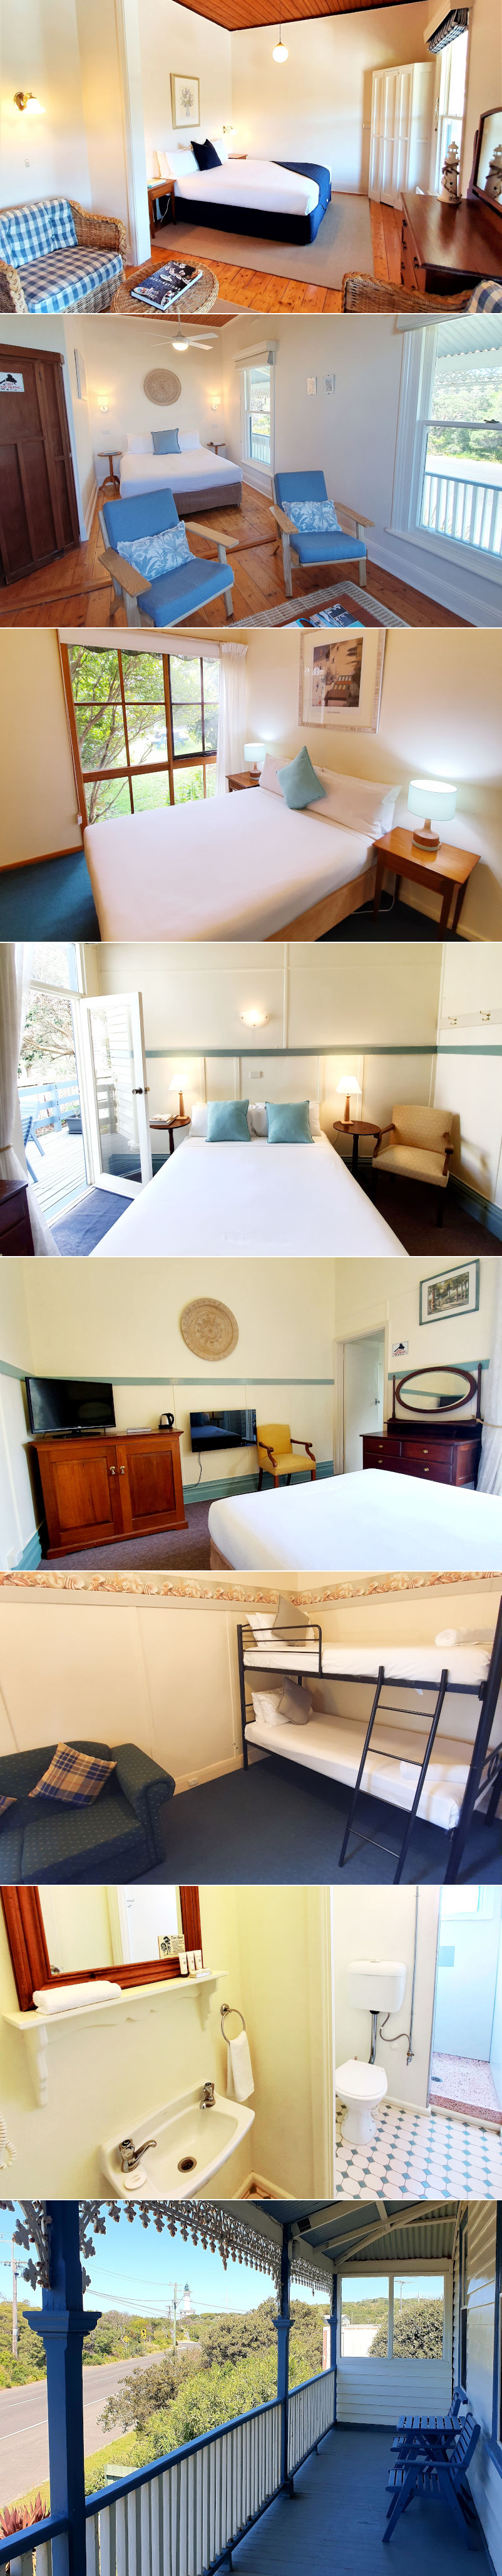 Point Lonsdale Guest House - Guest house rooms